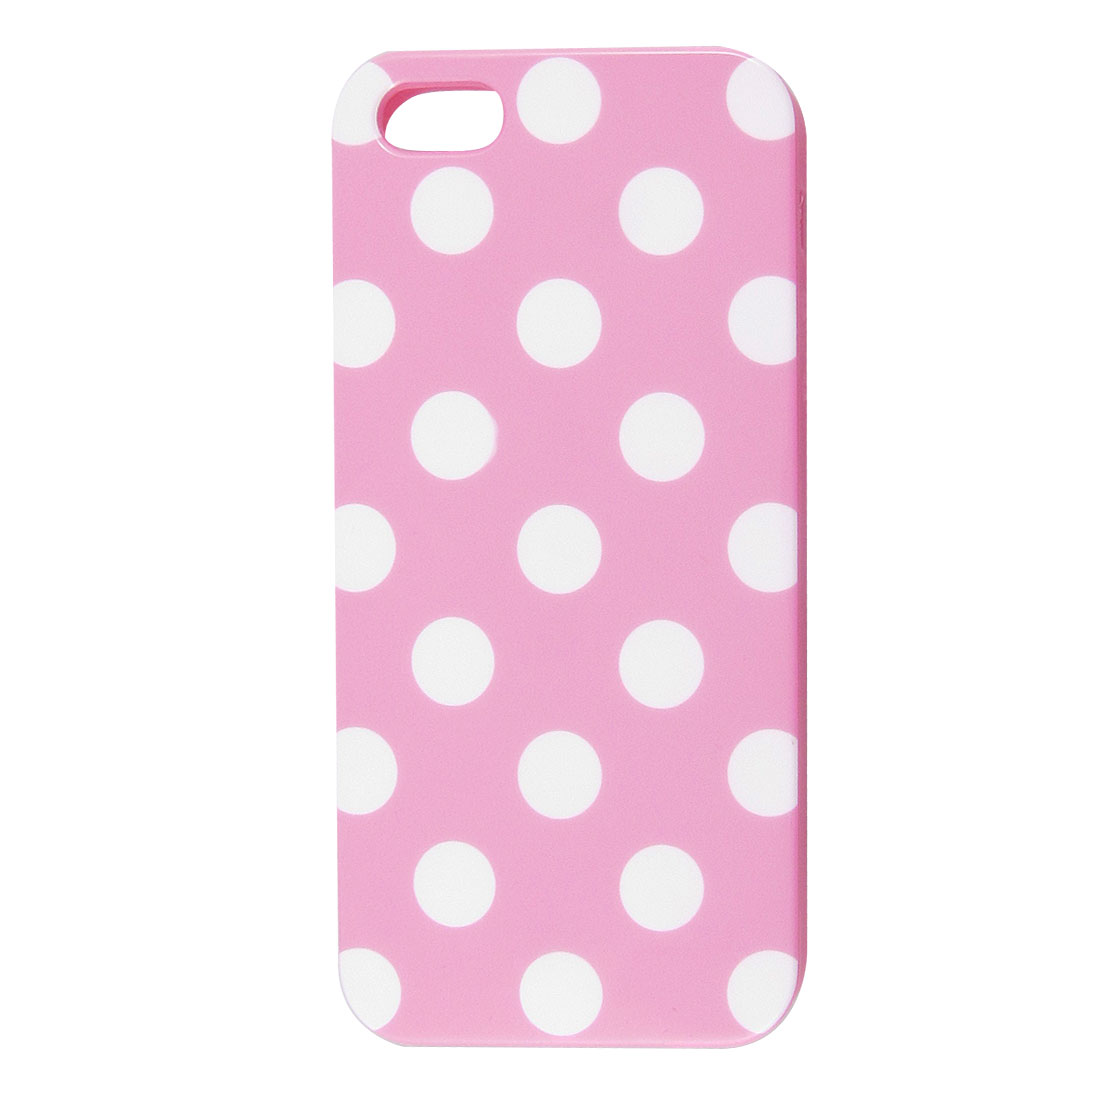 White Polka Dot Pink Plastic TPU Phone Case Cover for Apple iPhone 5 5G